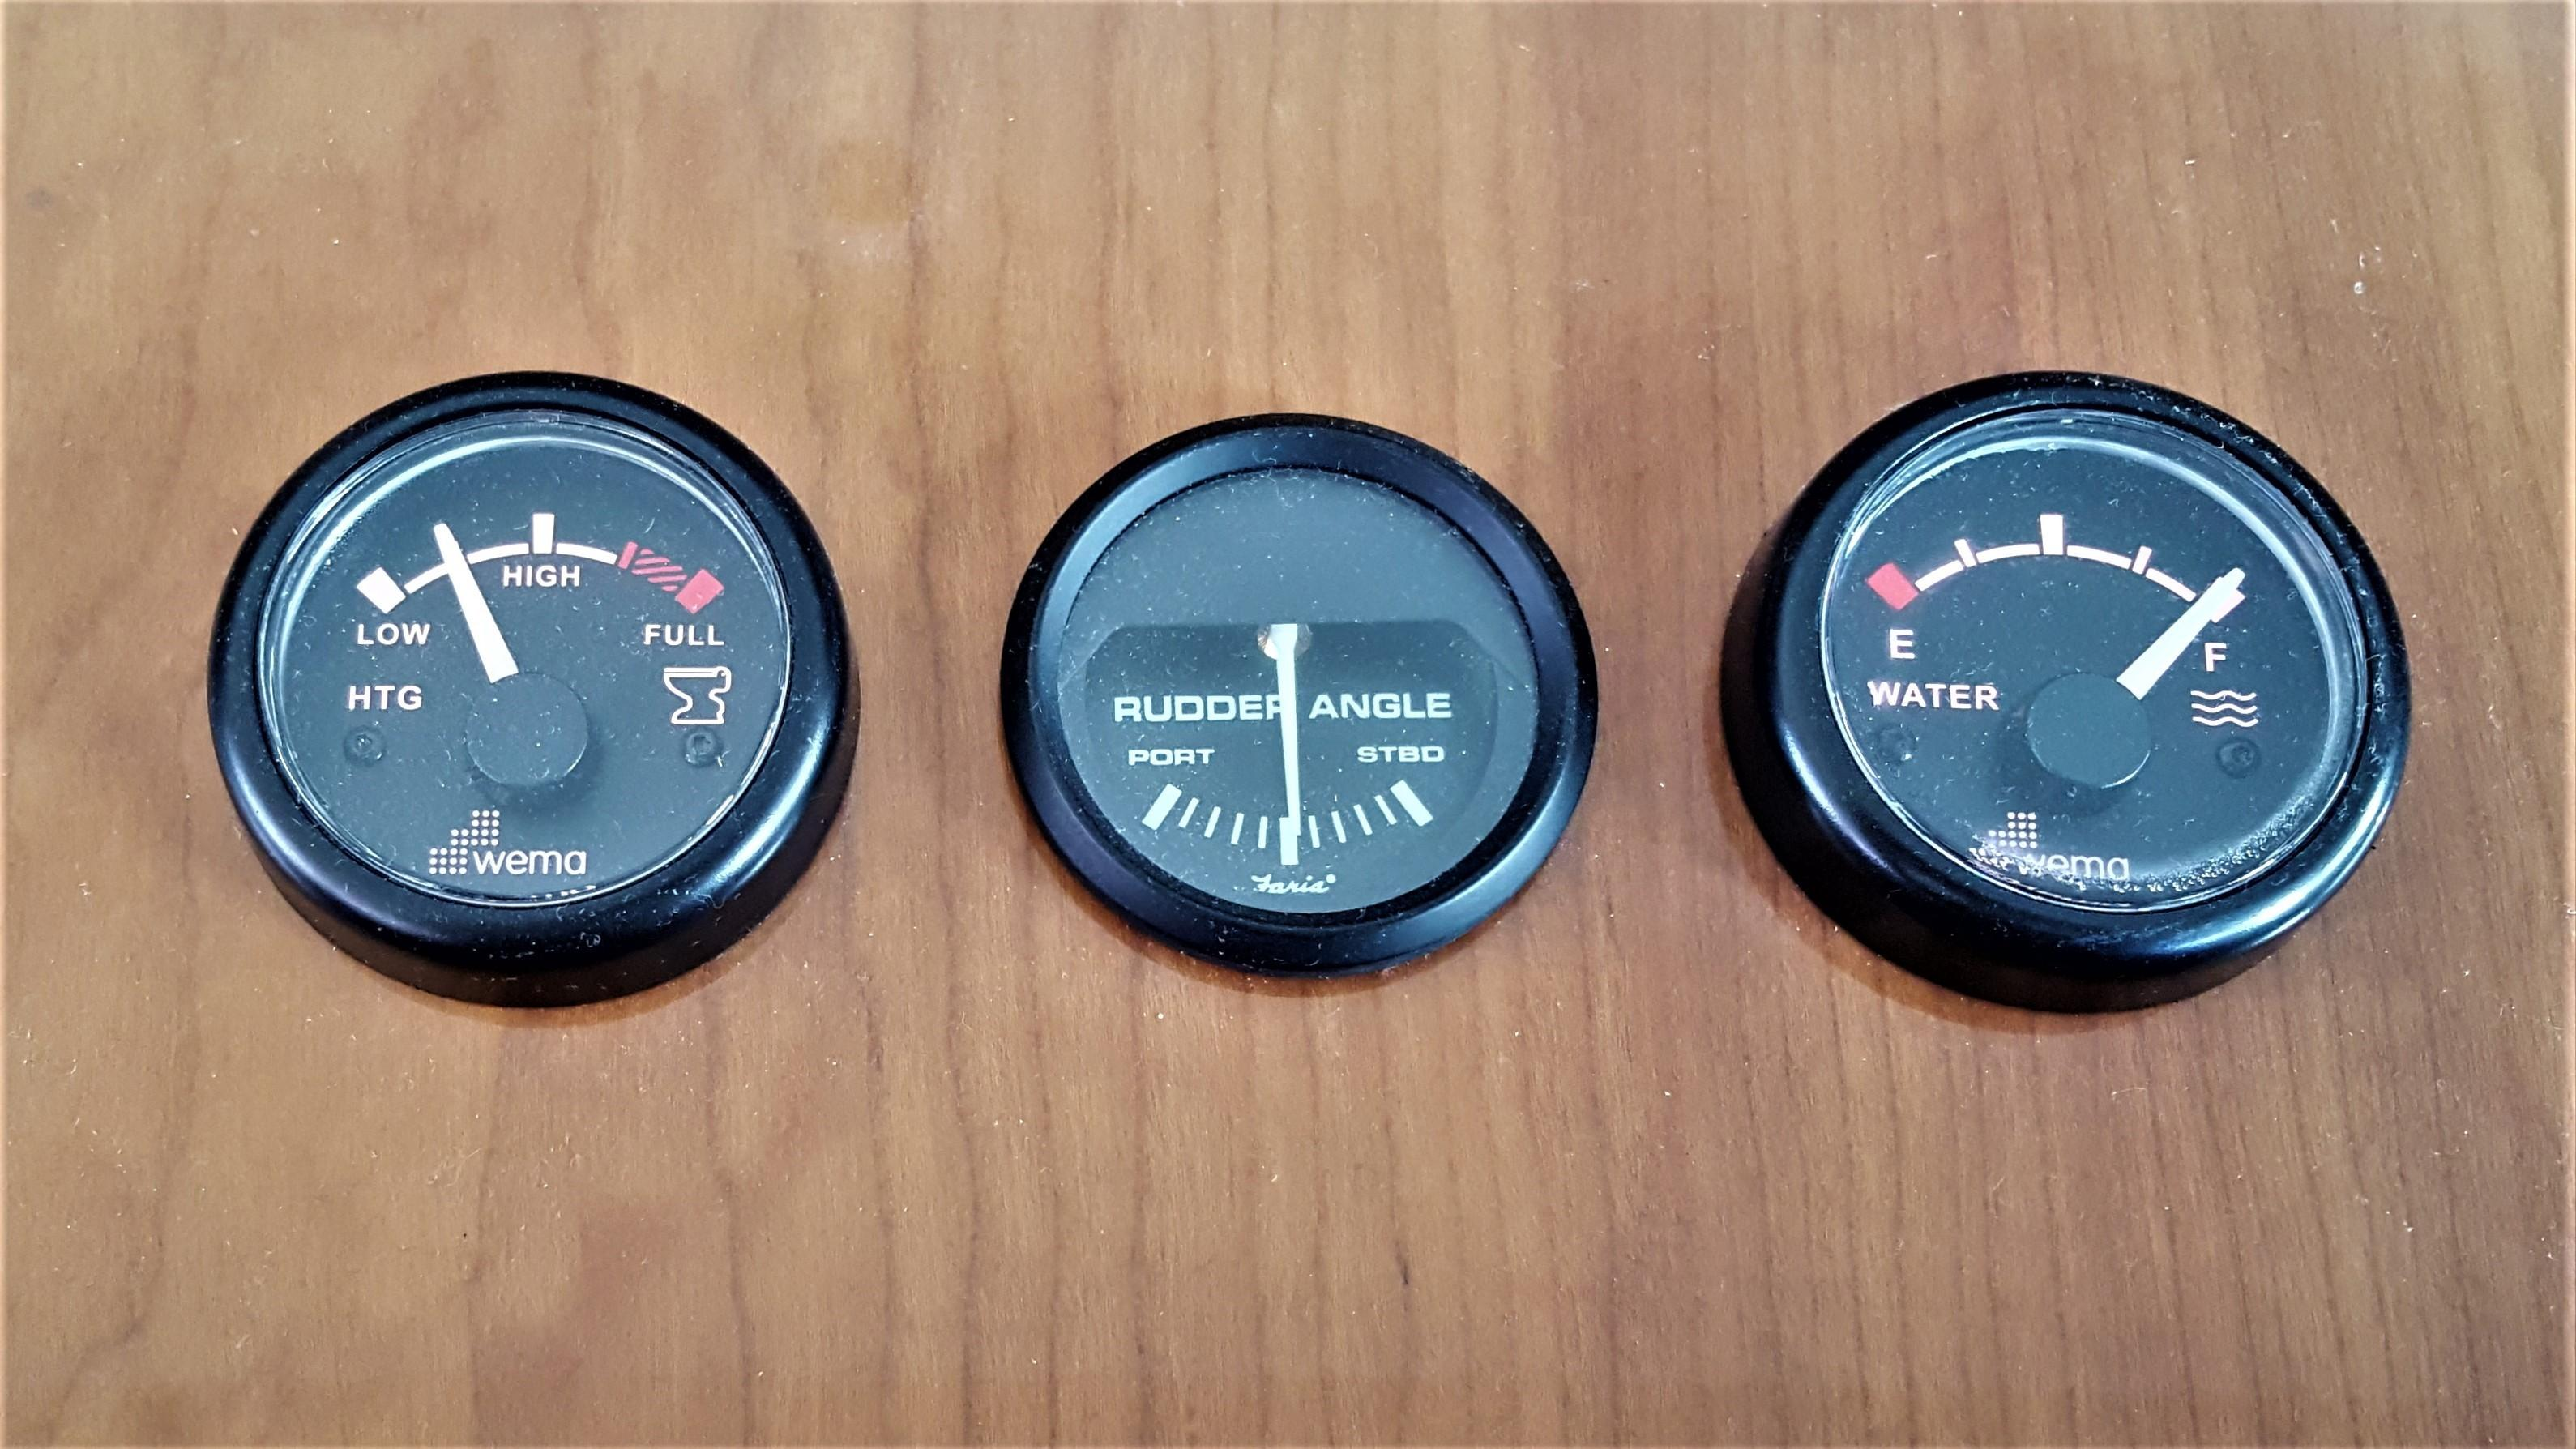 Gauges for Waste, Fresh Water & Rudder Angle